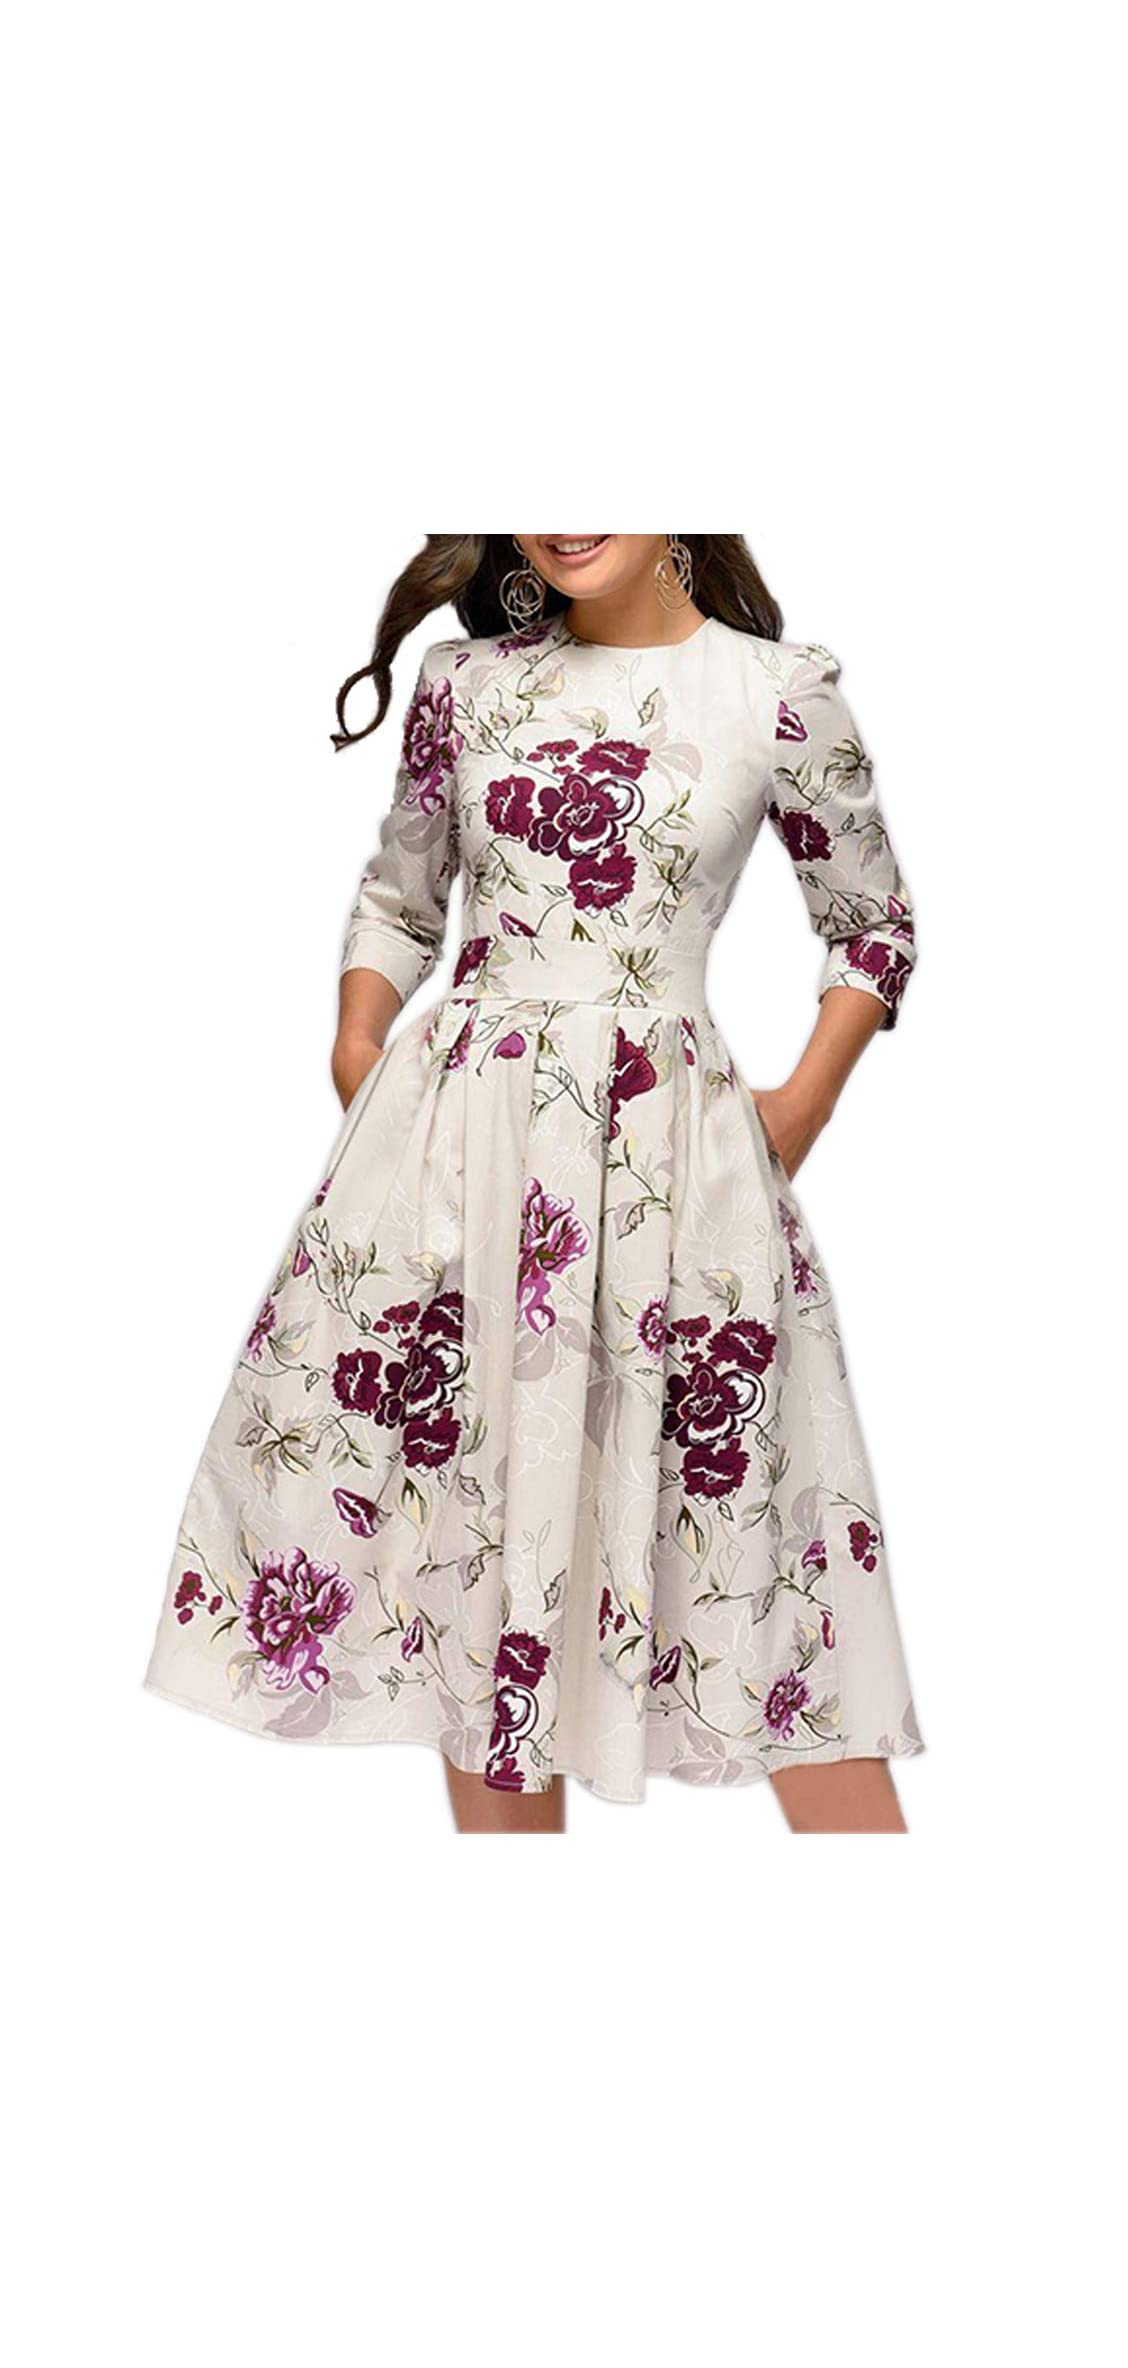 Women's Floral Vintage Dress Elegant Midi Evening